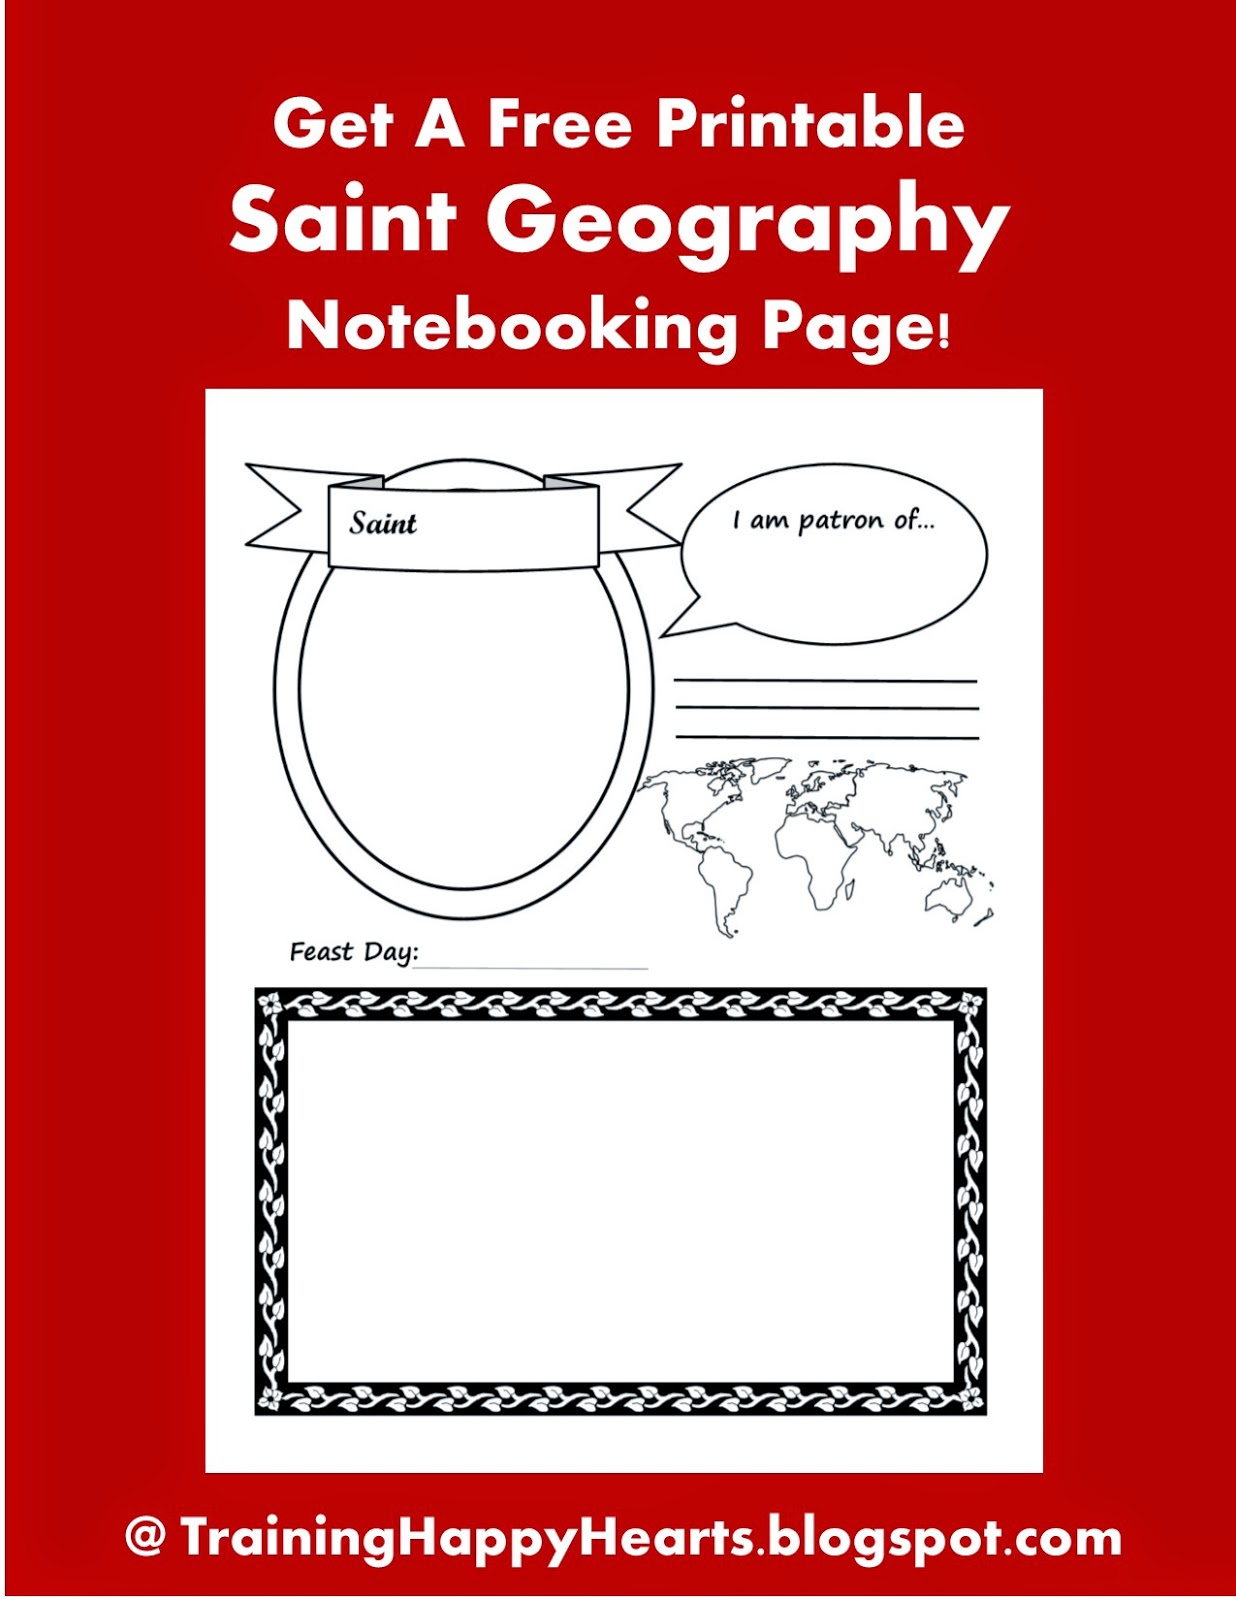 Training Happy Hearts Get A Free Printable Saint Geography Notebooking Page